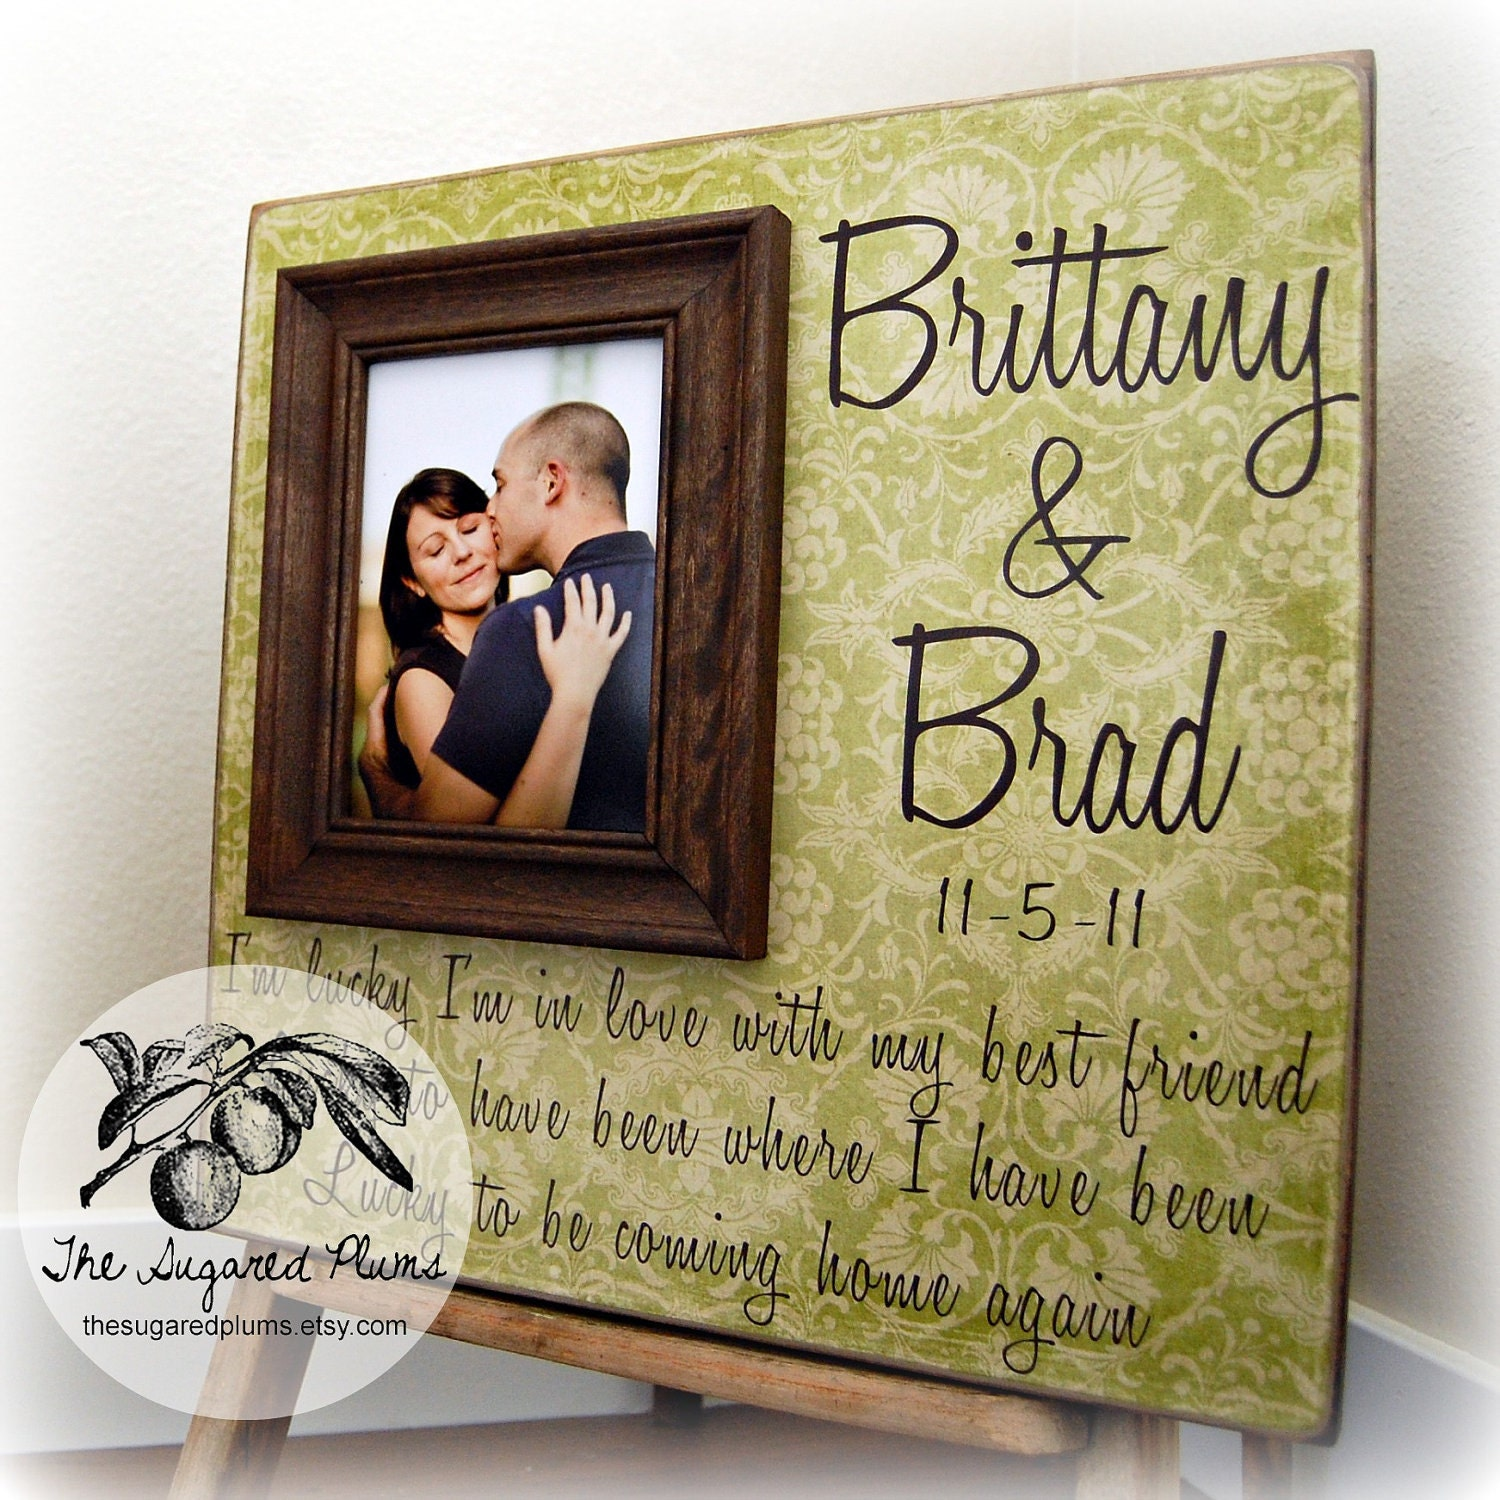 Wedding Picture Gifts: Wedding Gift Personalized Picture Frame 16x16 The Sugared